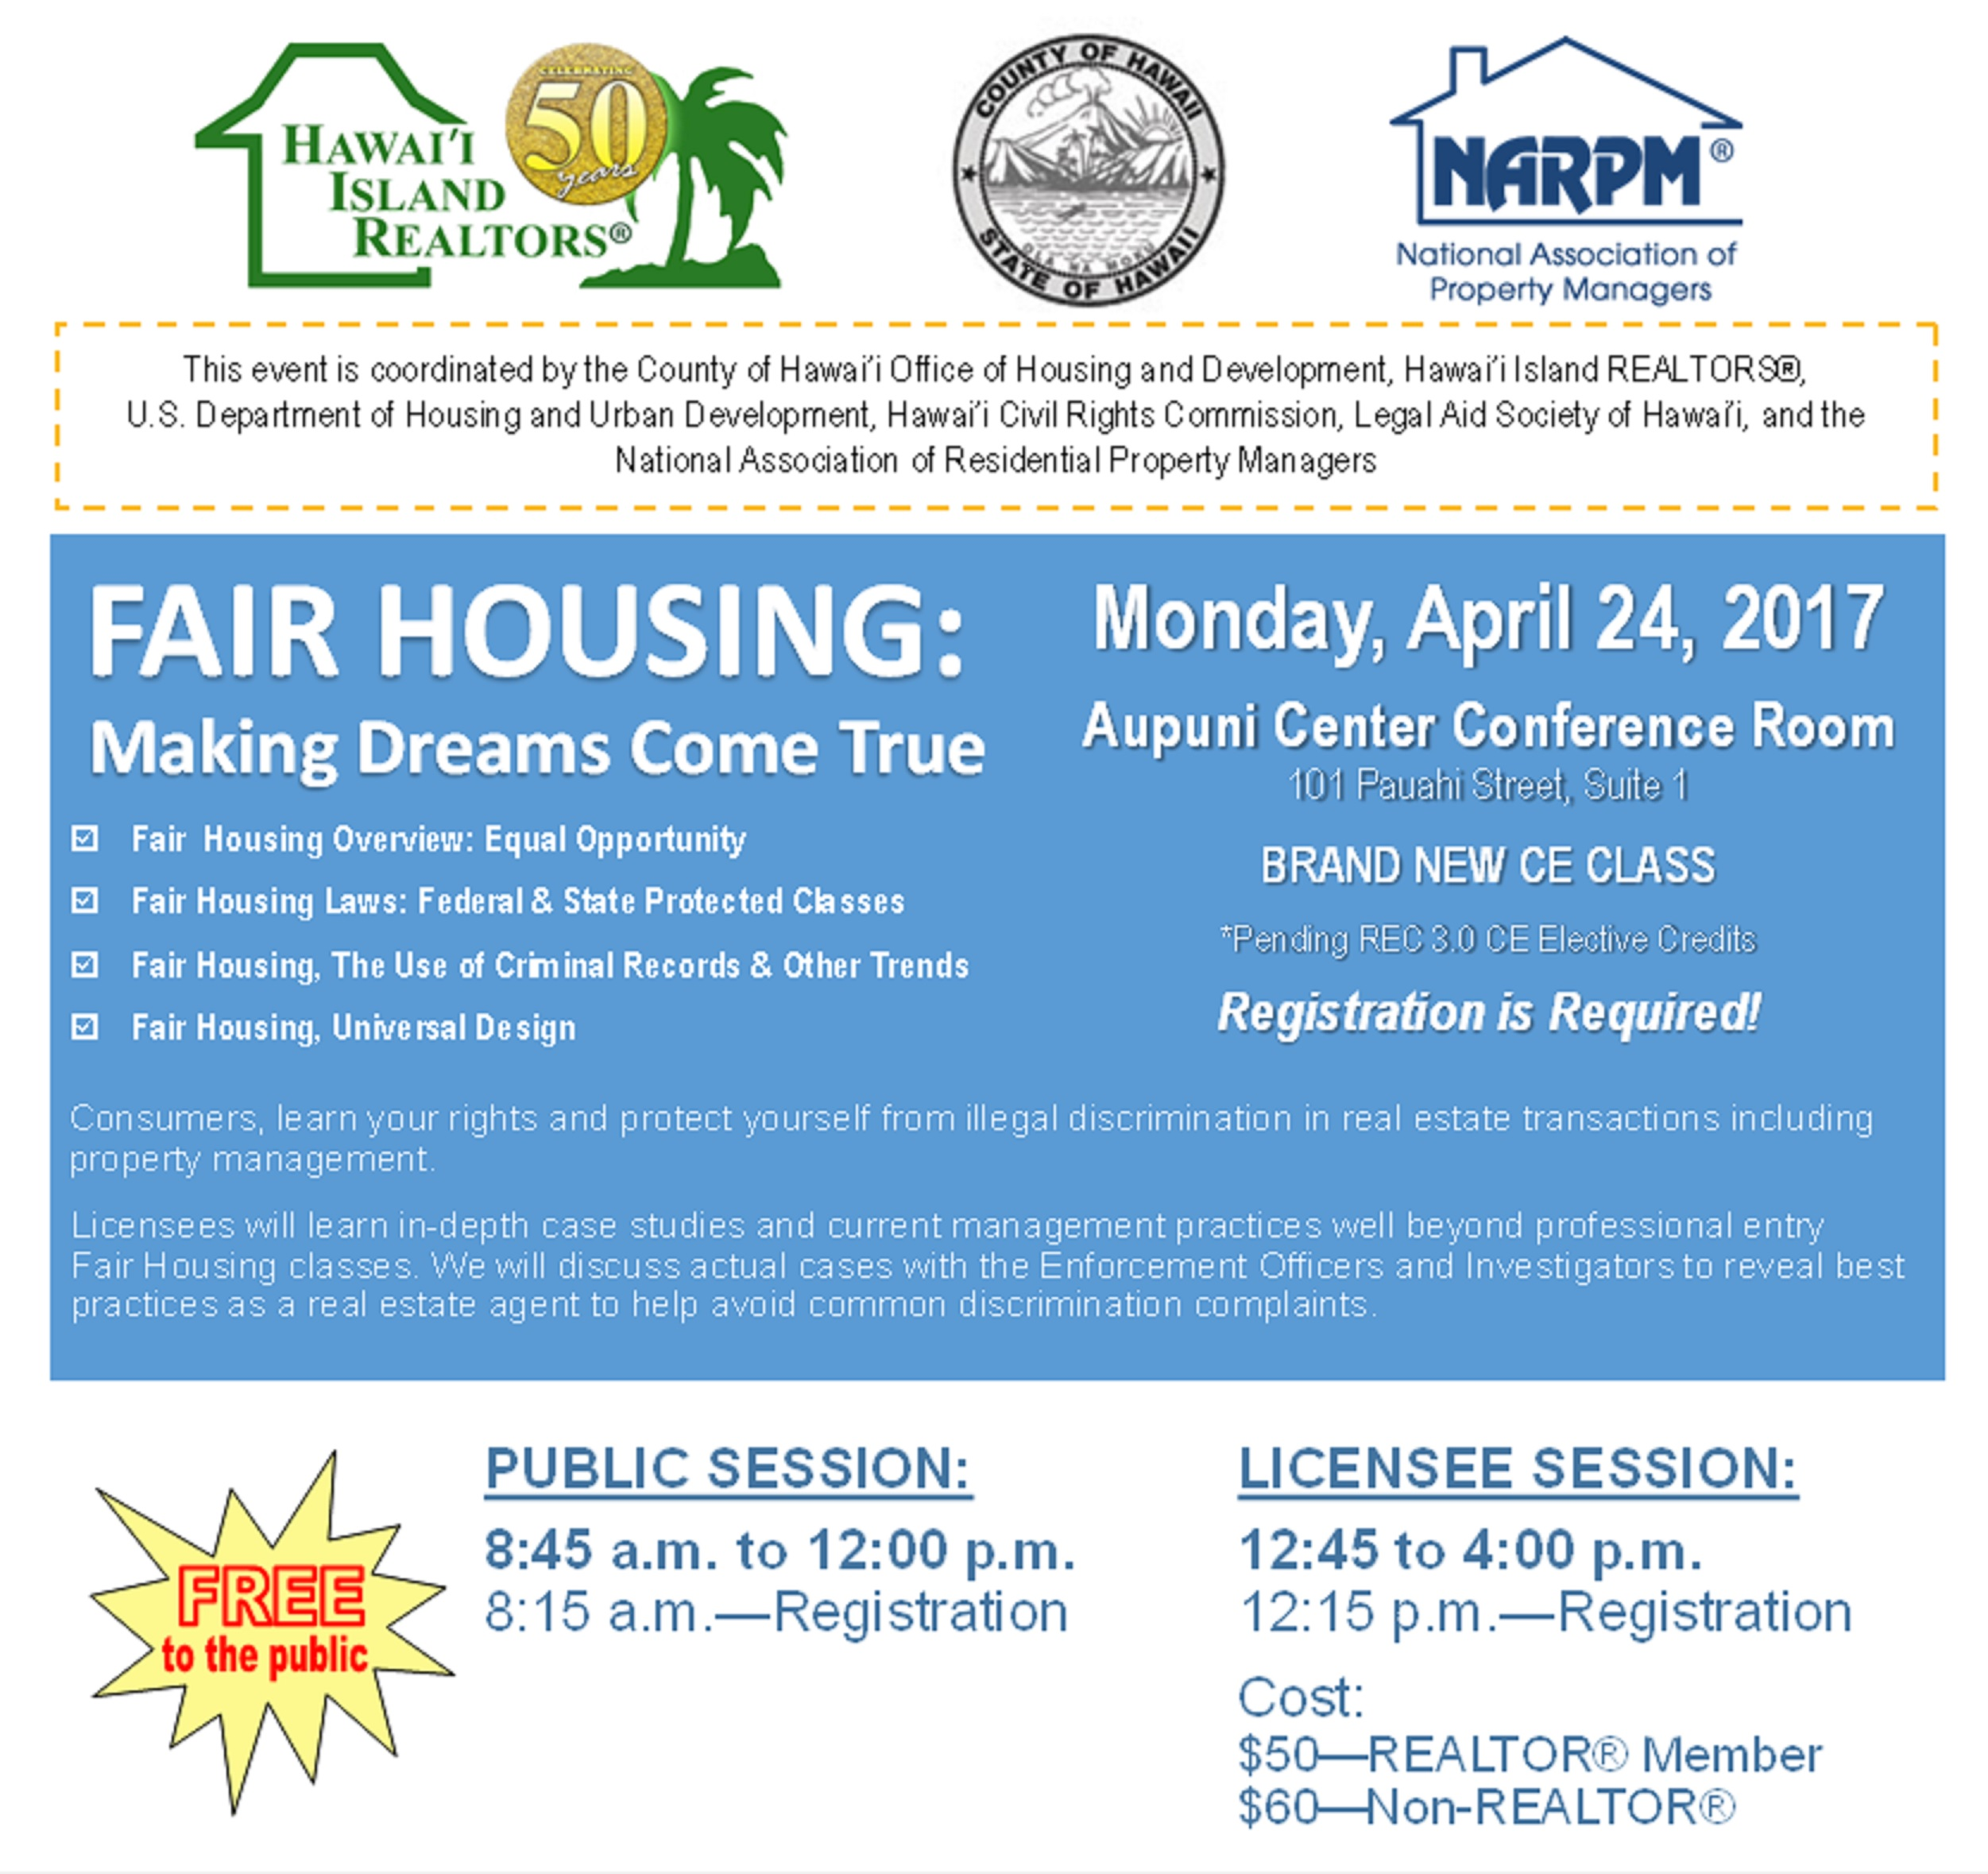 Free Fair Housing Seminar in Hilo Open To General Public & Licensees